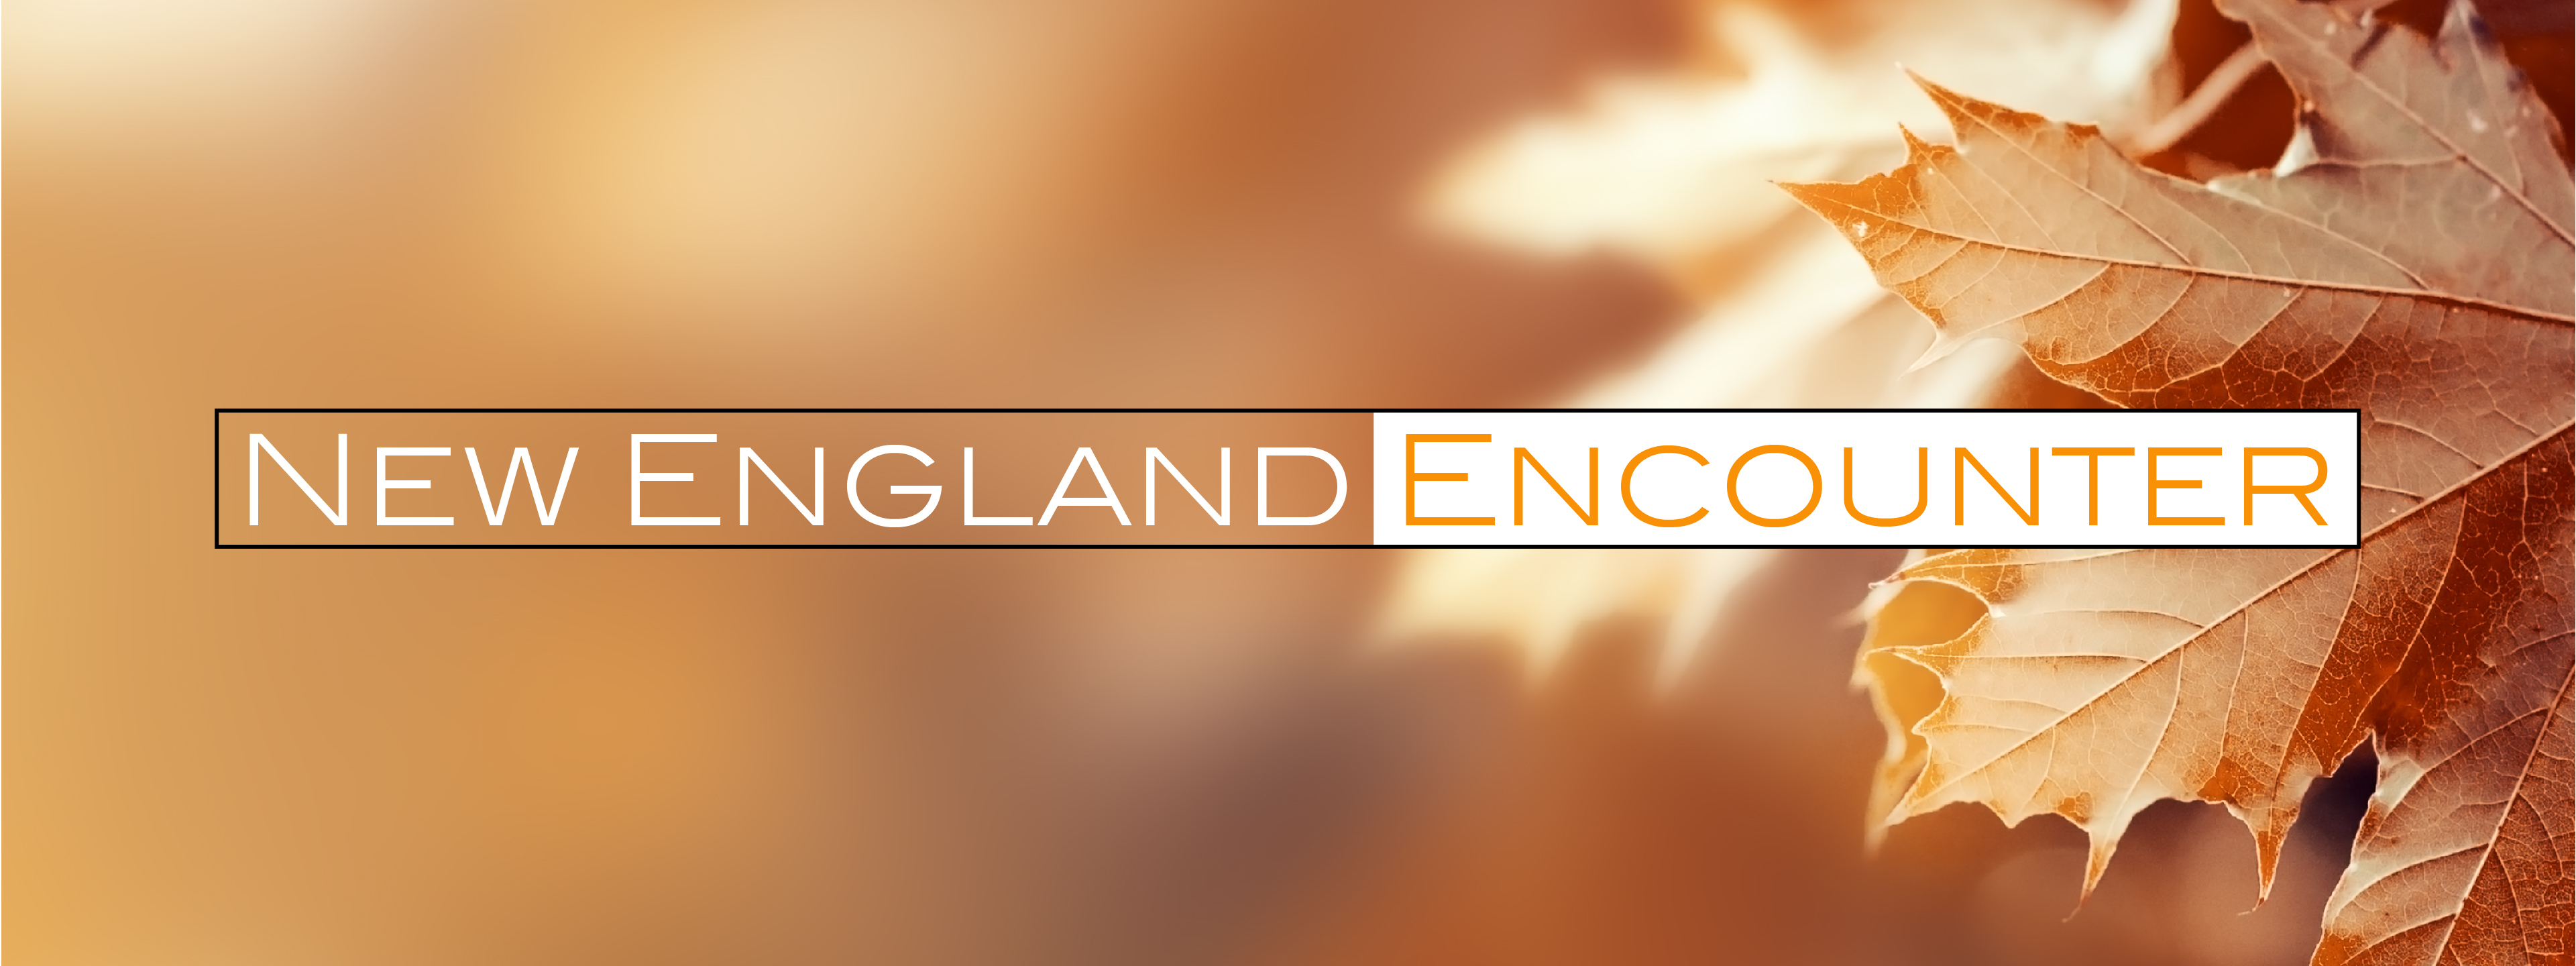 new-england-encounter-5brd-dq2018-web-banner